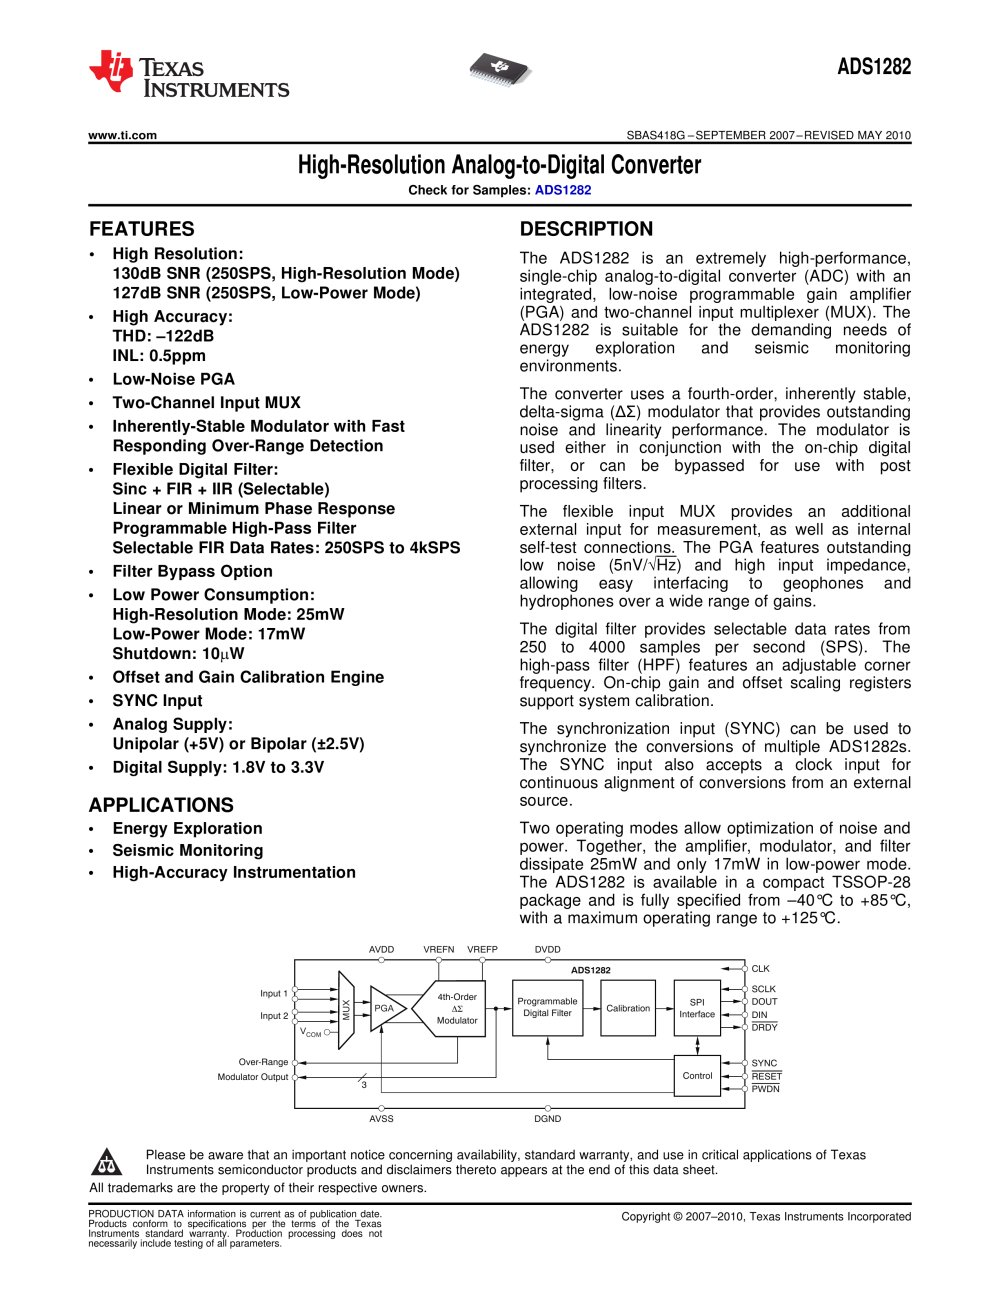 High Resolution Adc Rev G Texas Instruments Semiconductor Pdf Octal Speed A D Converters 1 54 Pages